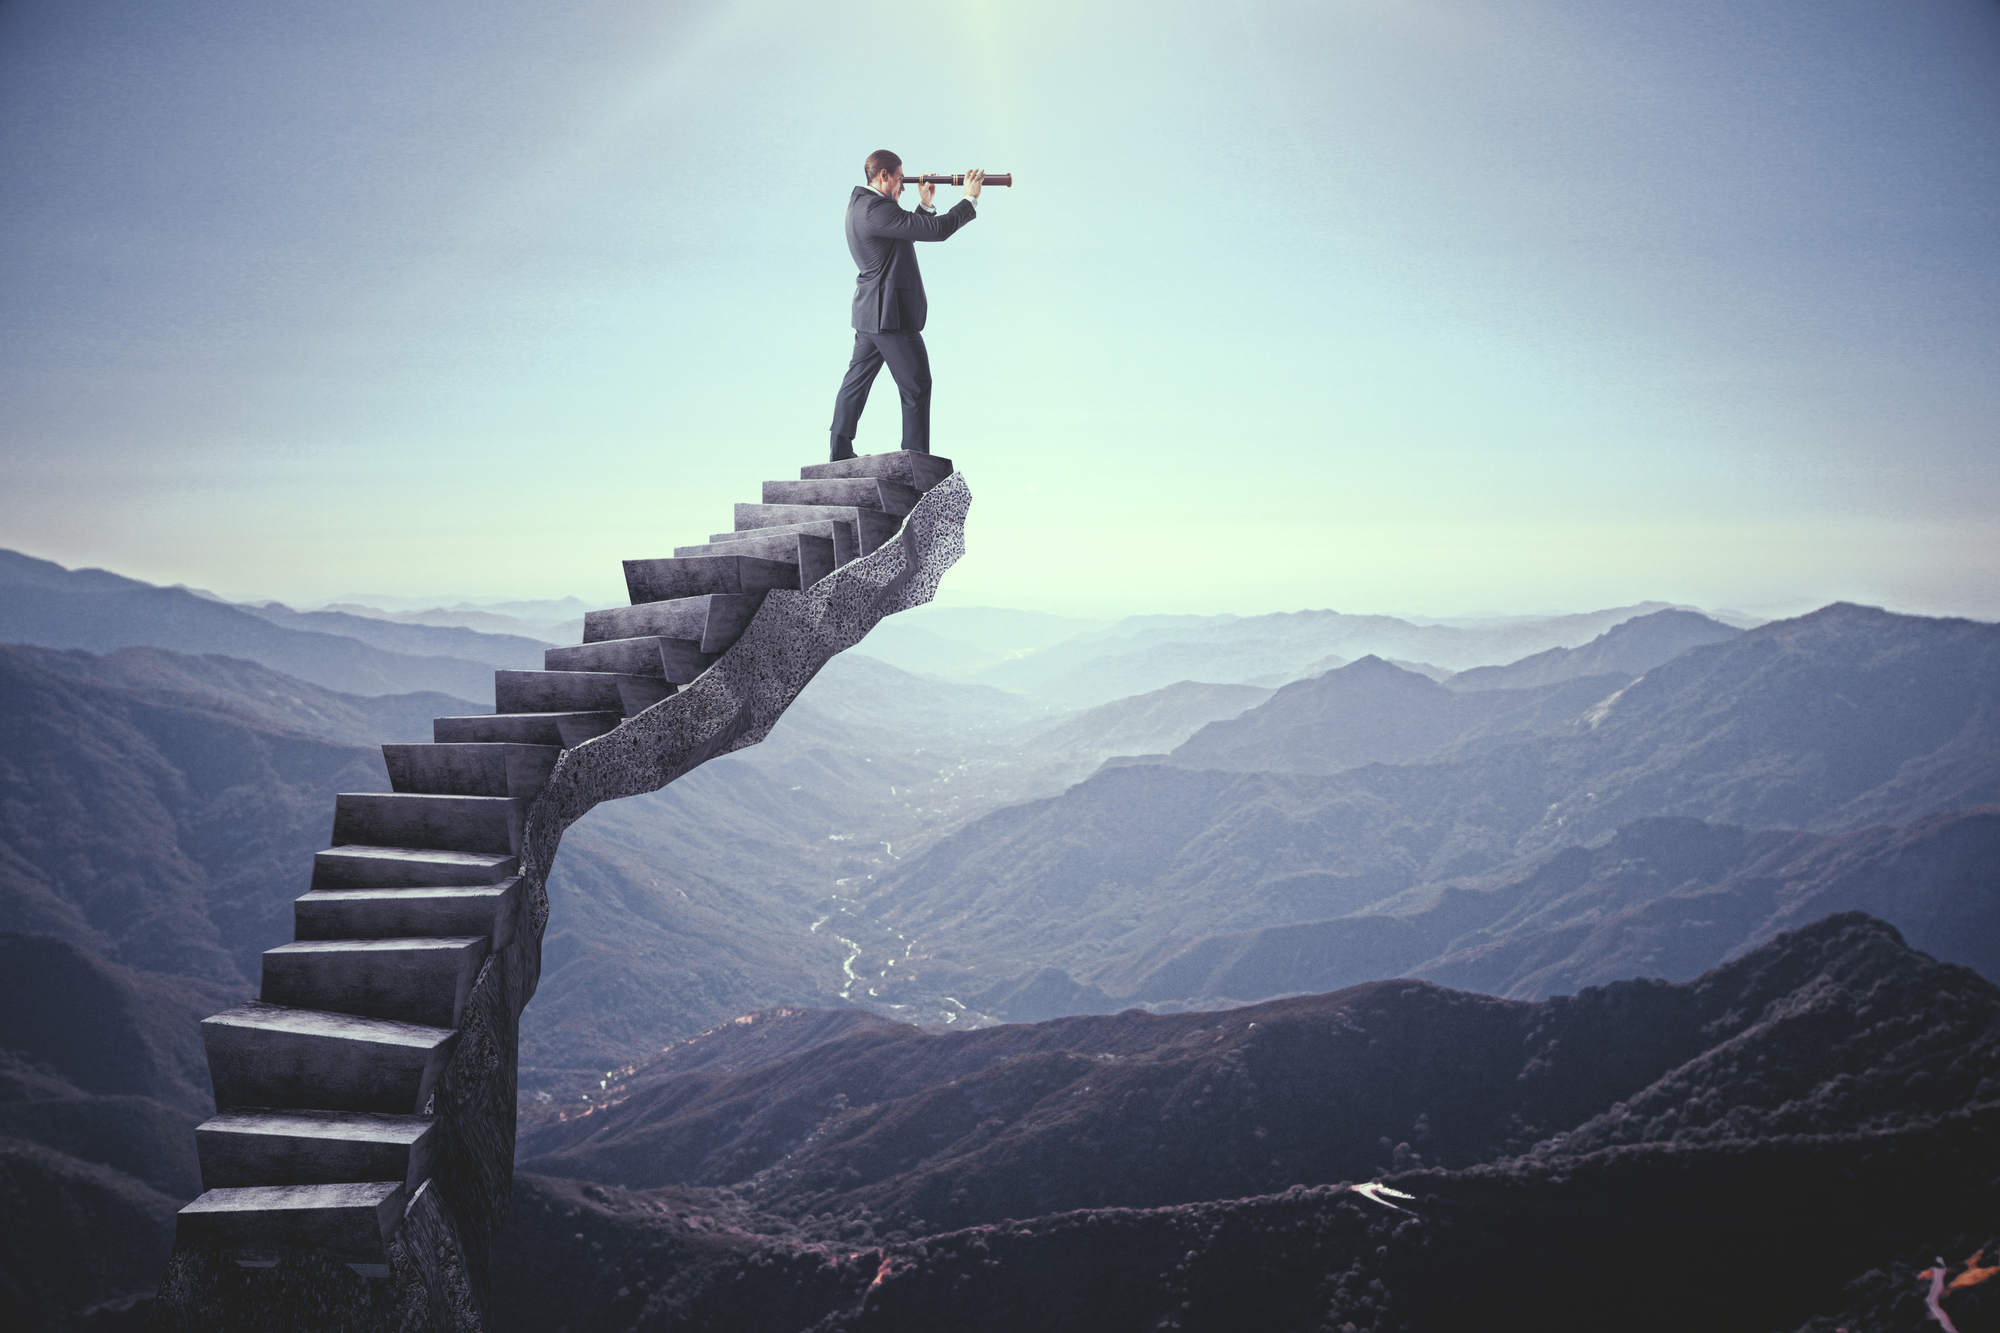 Businessman looking into the distance on abstract stairs. Landscape background. Research and vision